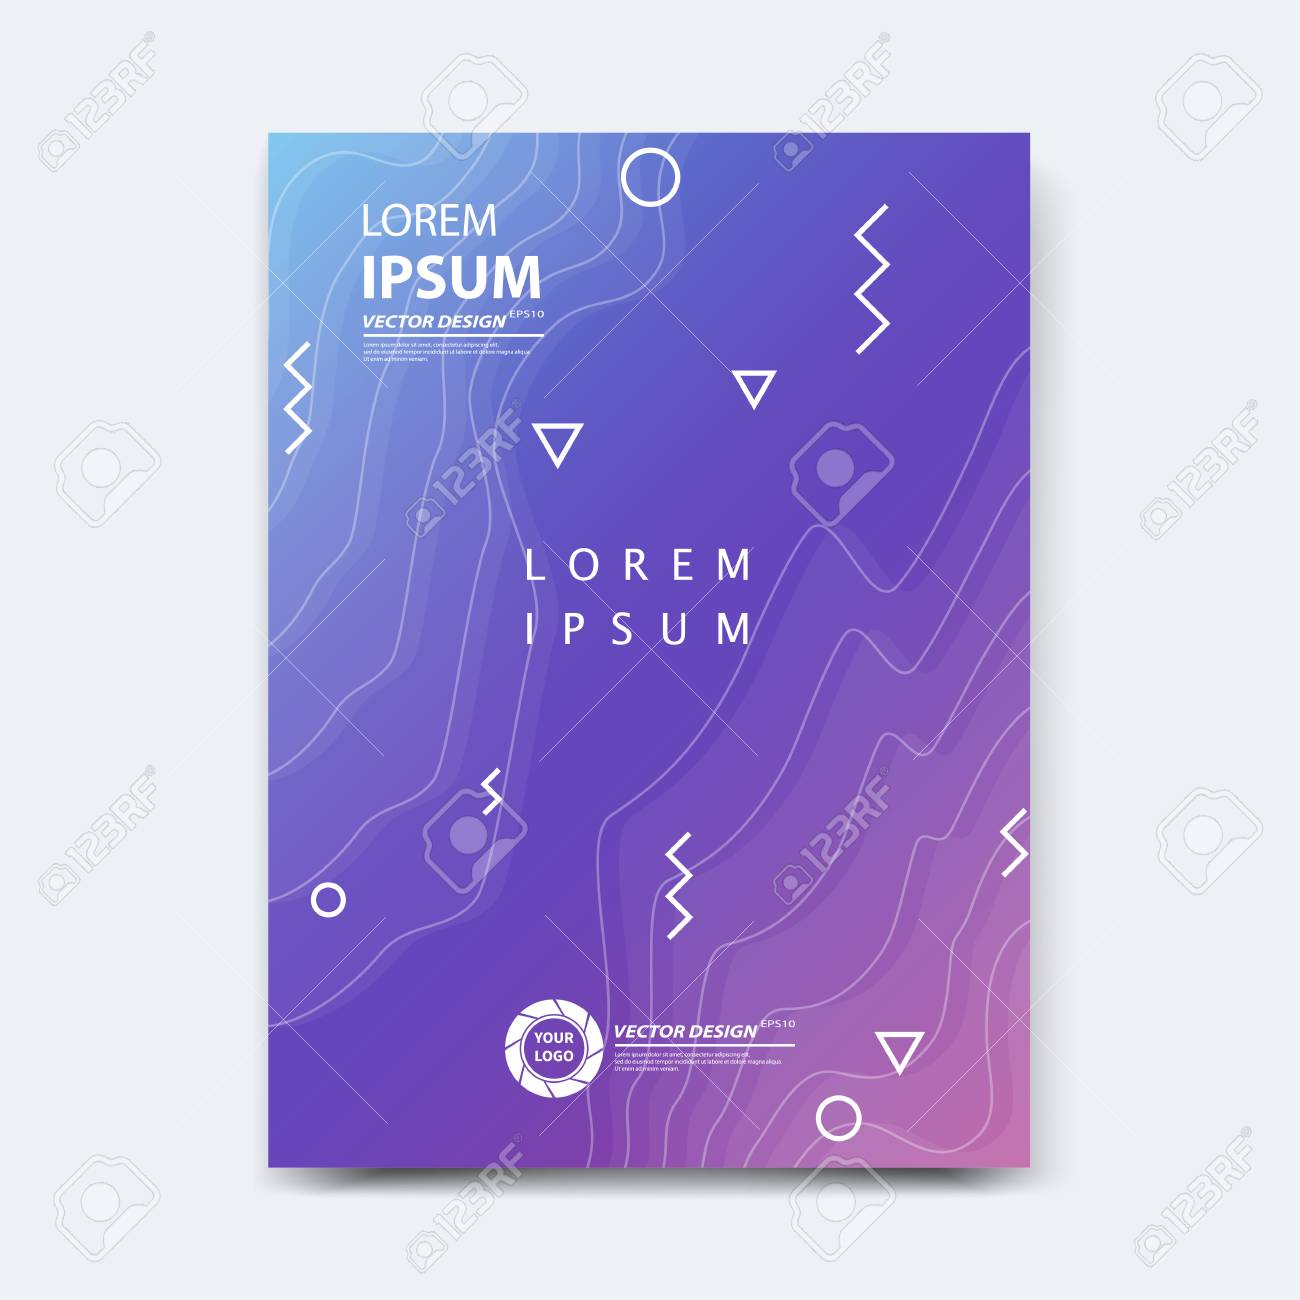 Abstract vector design for cover, poster, banner, flyer, business card, magazine annual report, title page, brochure template layout or booklet .A4 size with geometric shapes on white background. - 104581709